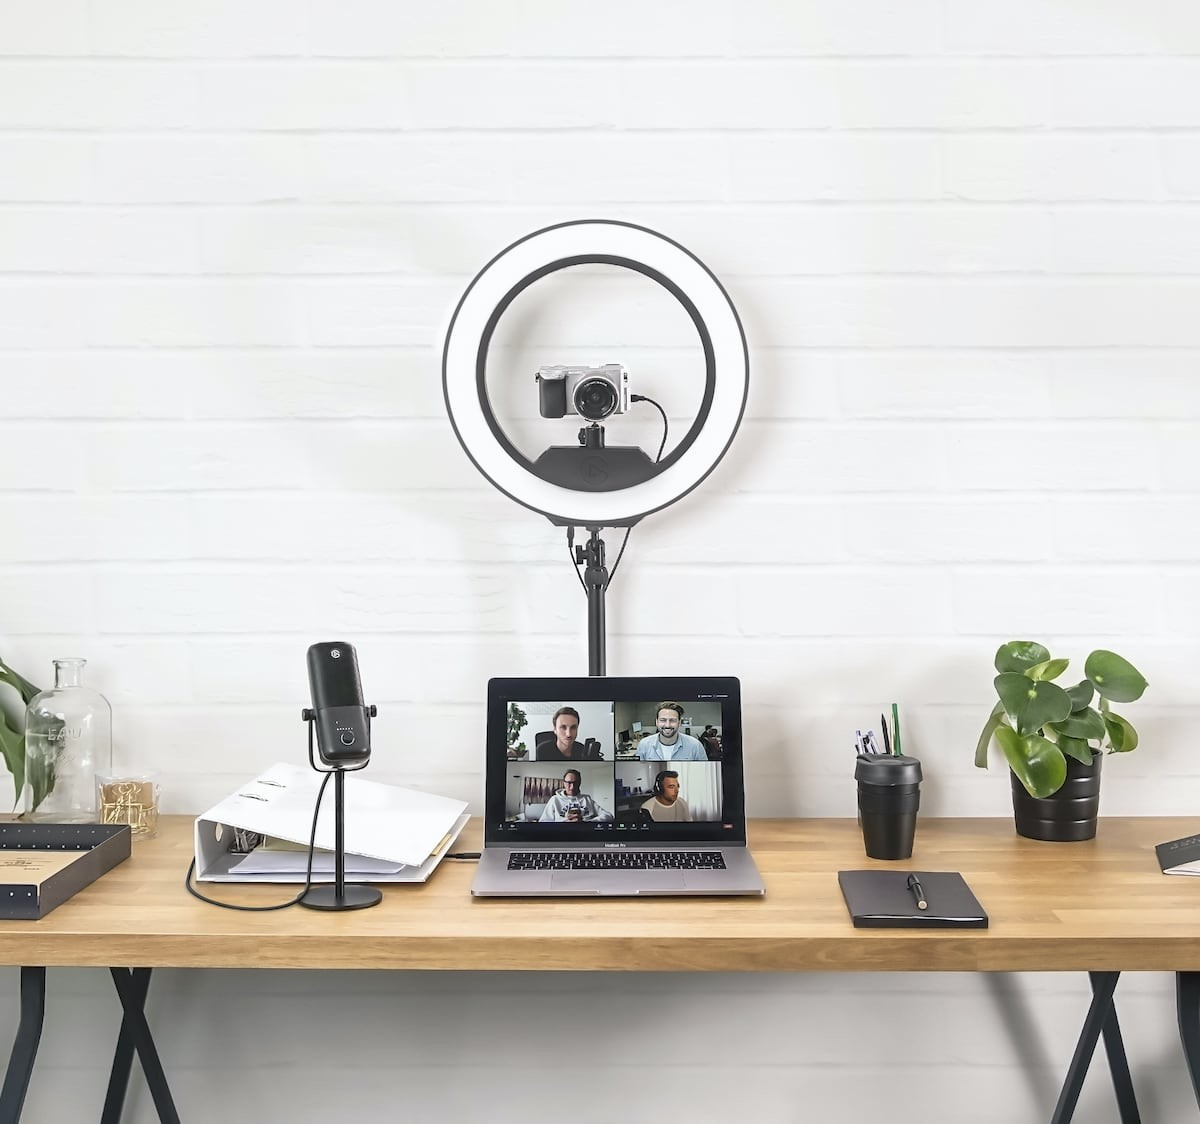 Elgato Ring Light illuminating lamp takes your productions up a notch